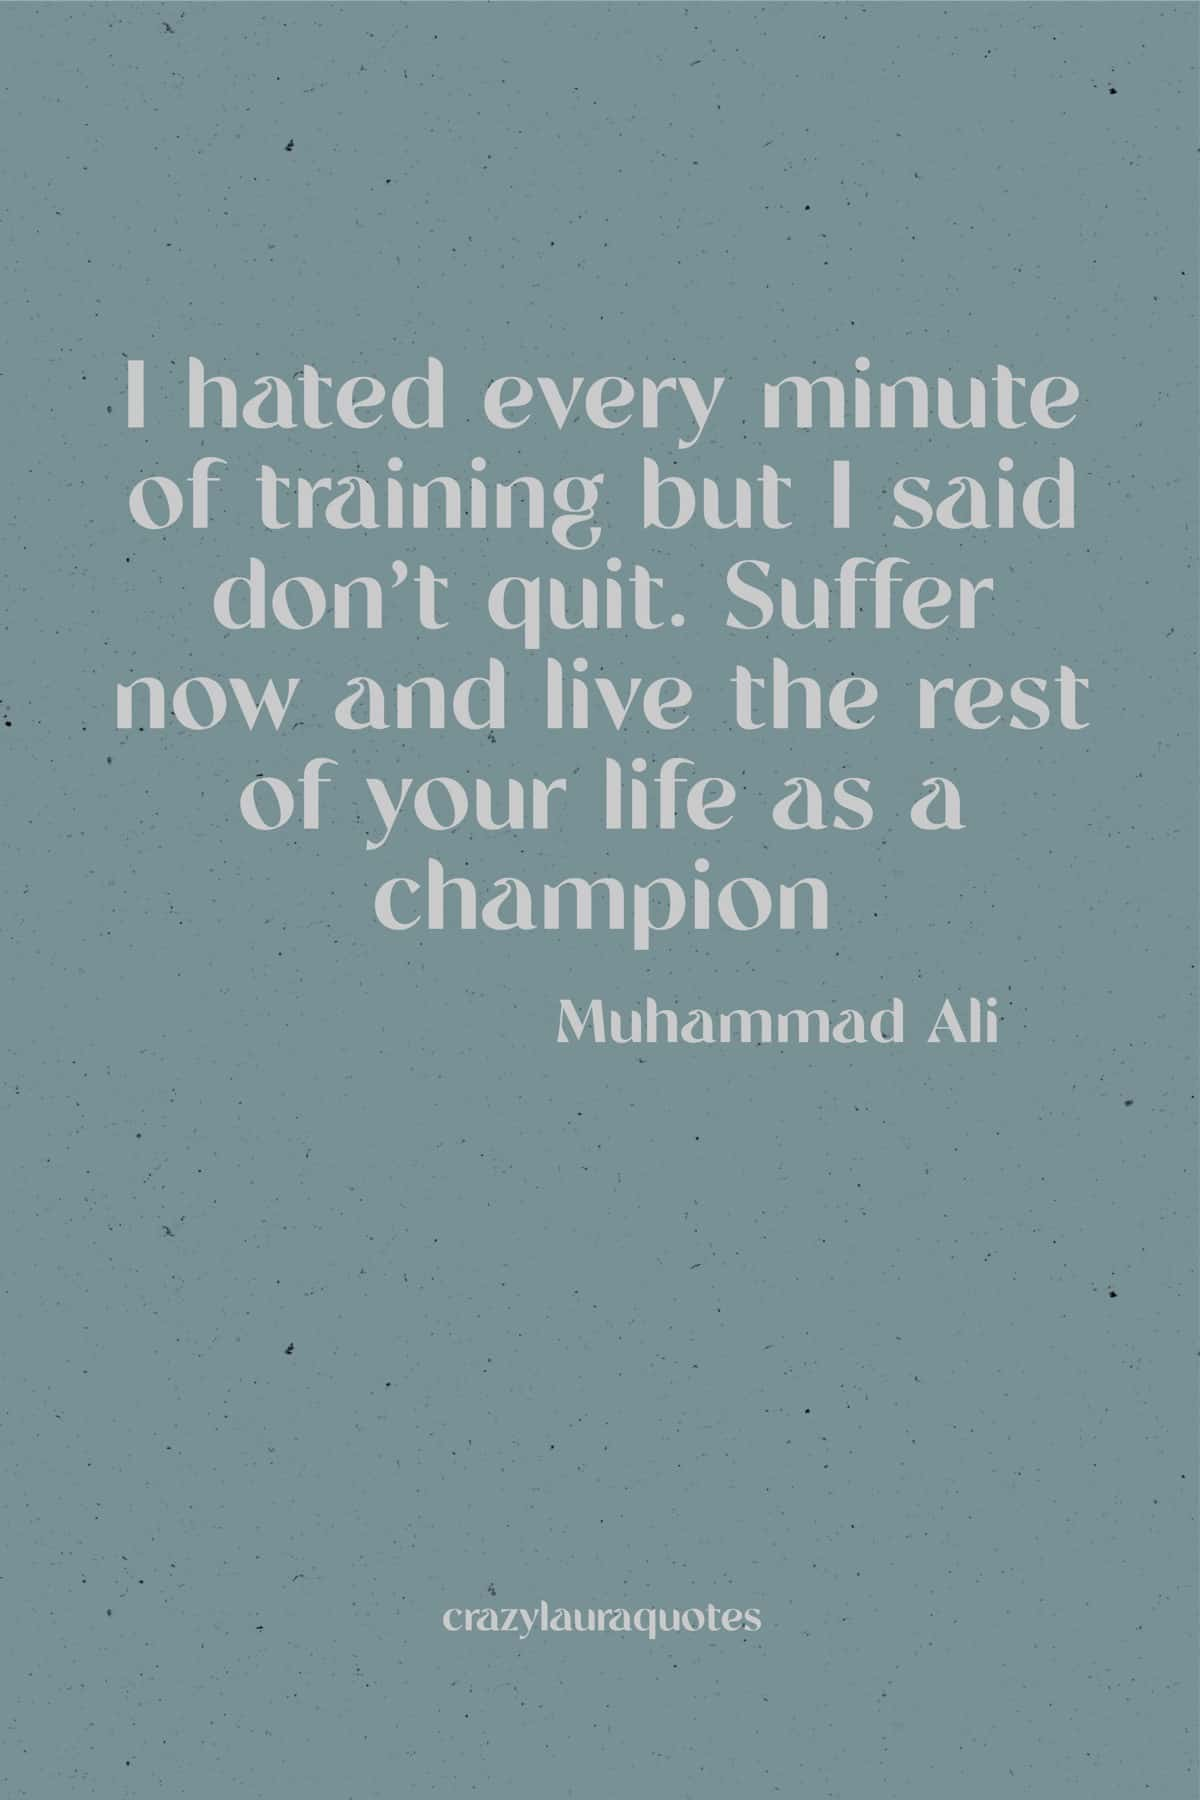 don't quit quote by muhammad ali